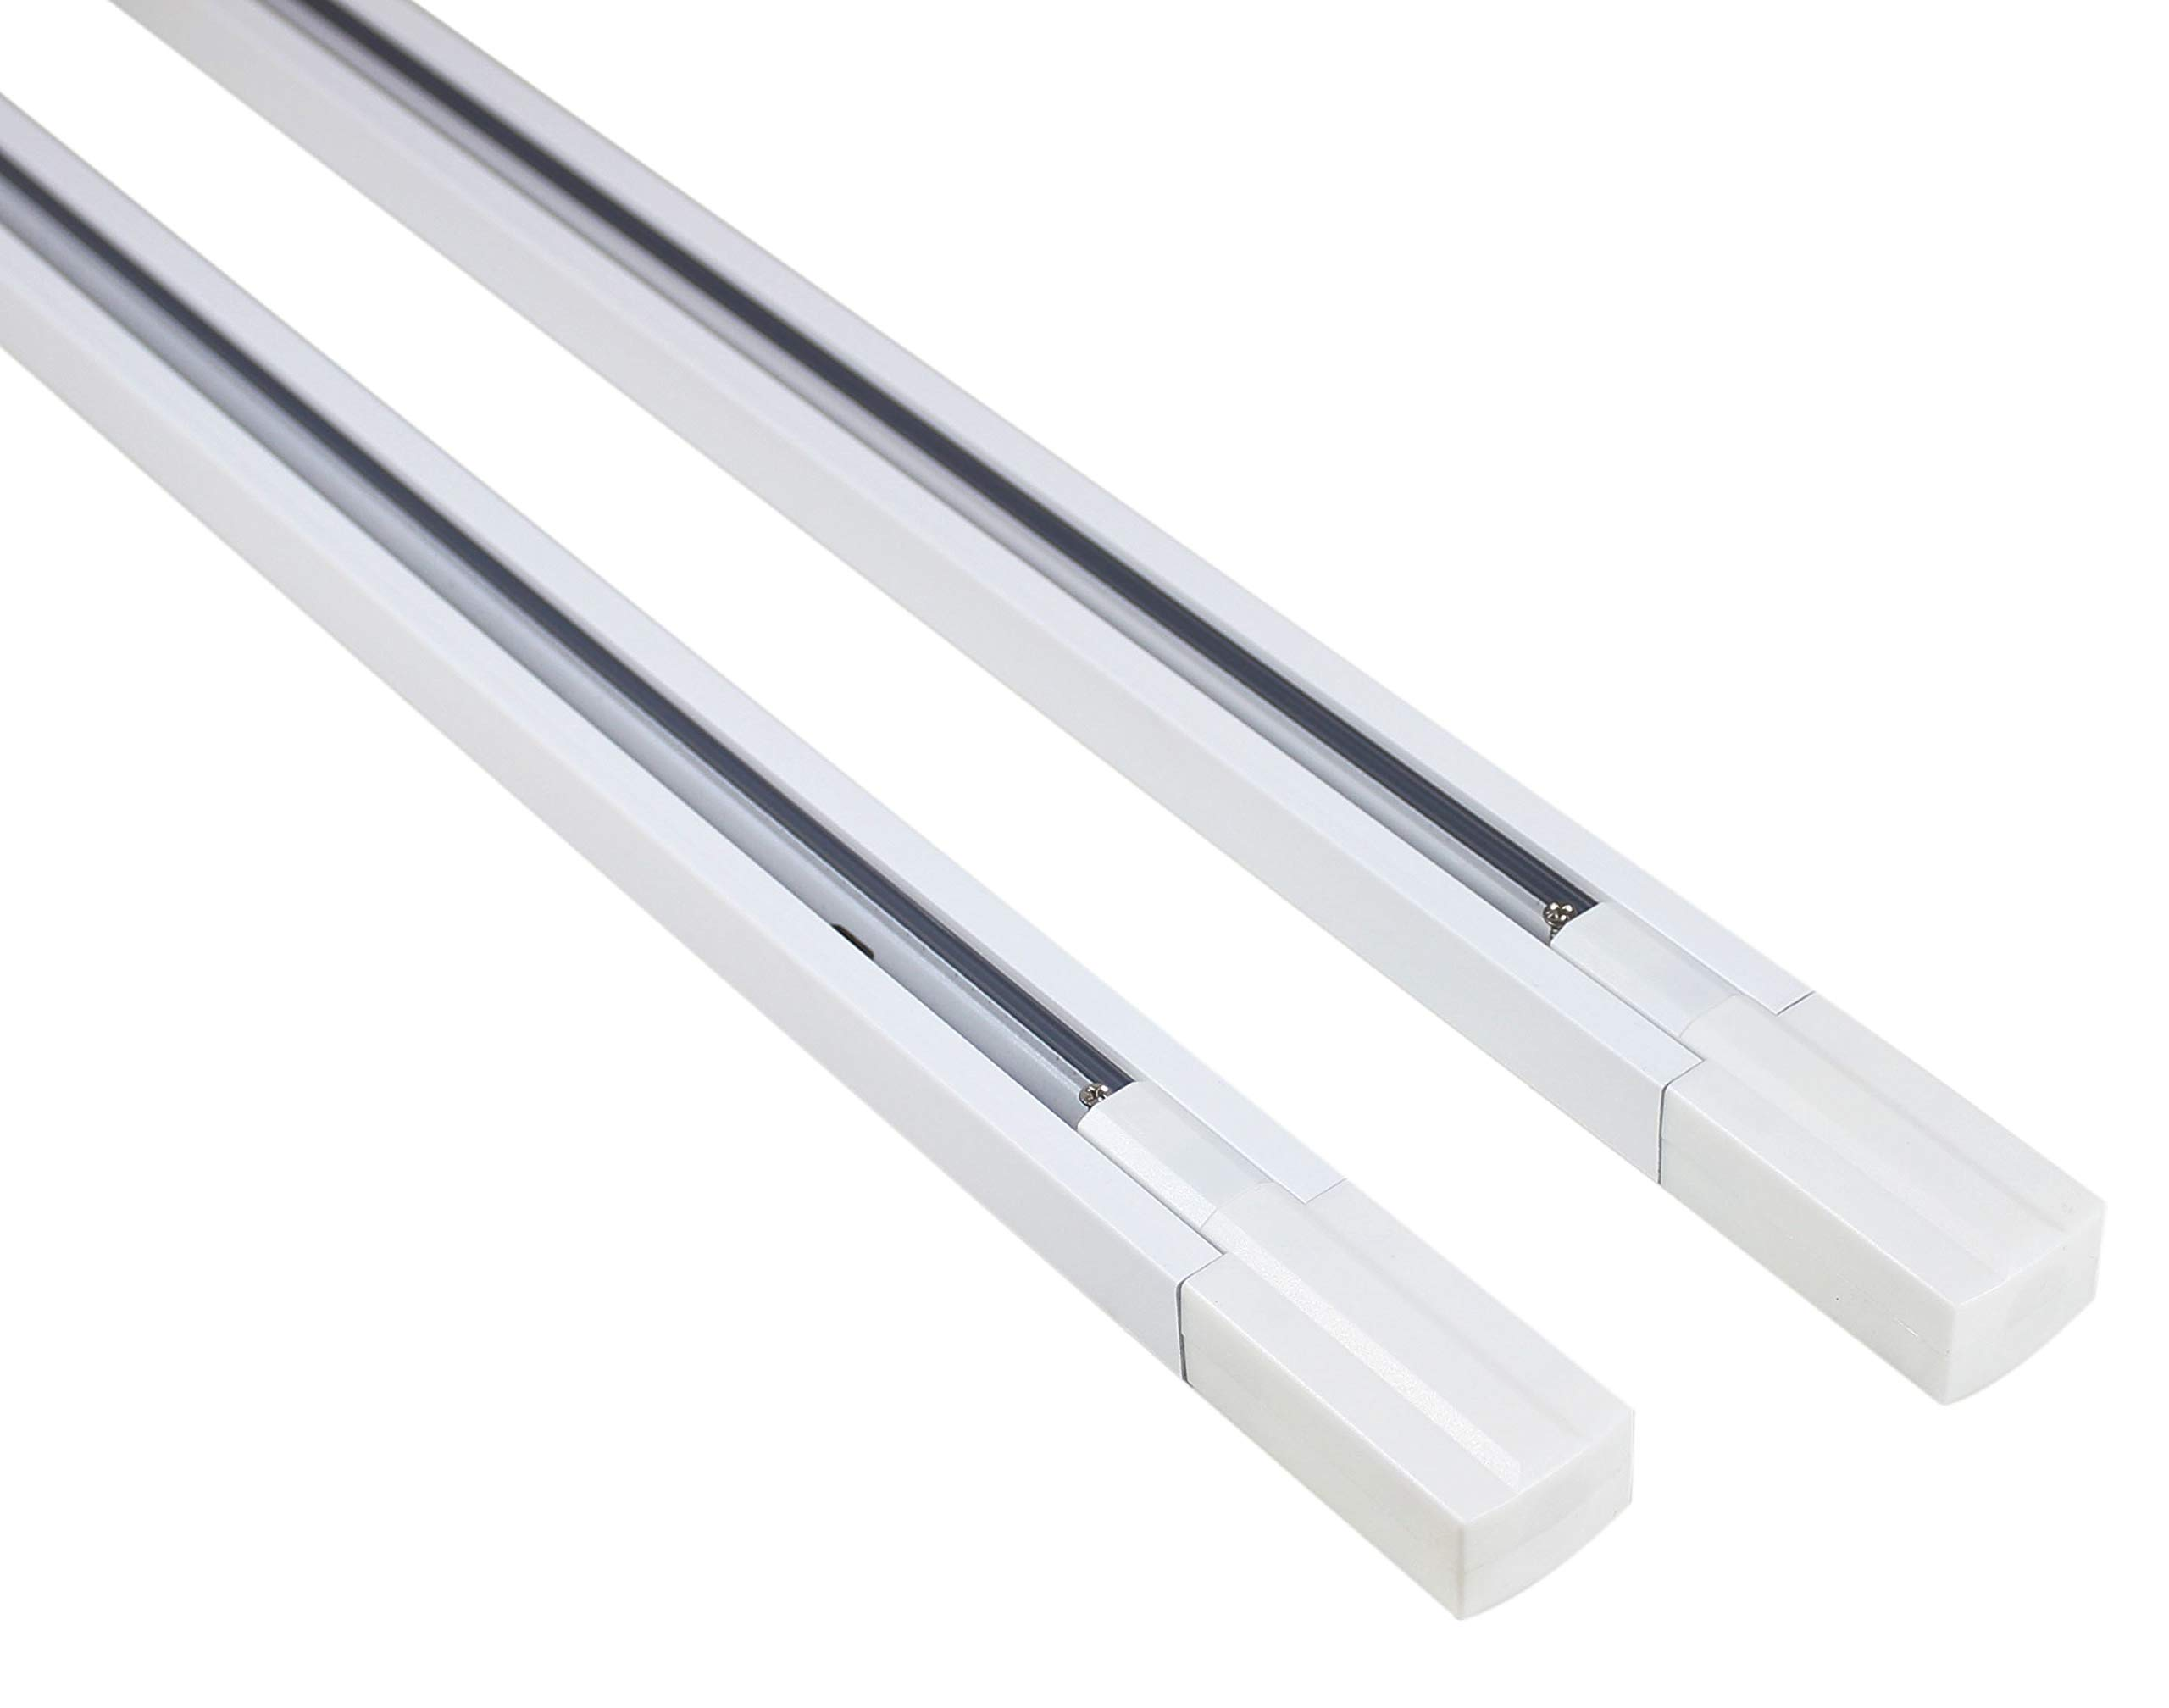 J.LUMI RAL1002W Track Light Rails, 3-Wire Single Circuit Track Rails, White Paint Finish, 3-ft per Section (Pack of 2 Sections), Compatible w/ TRK9000W and TRK9600W Track Heads only